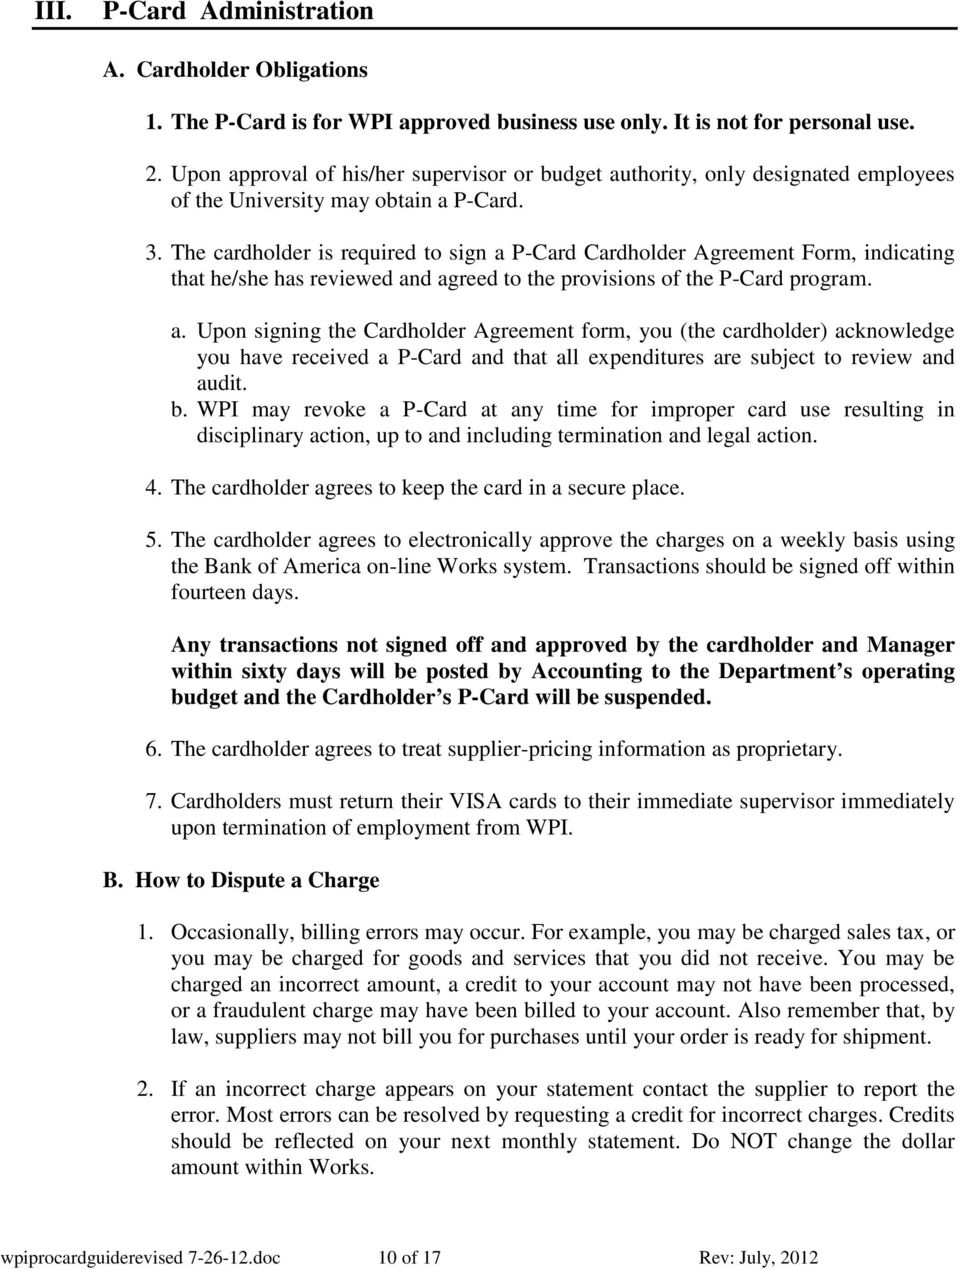 The cardholder is required to sign a P-Card Cardholder Agreement Form, indicating that he/she has reviewed and agreed to the provisions of the P-Card program. a. Upon signing the Cardholder Agreement form, you (the cardholder) acknowledge you have received a P-Card and that all expenditures are subject to review and audit.